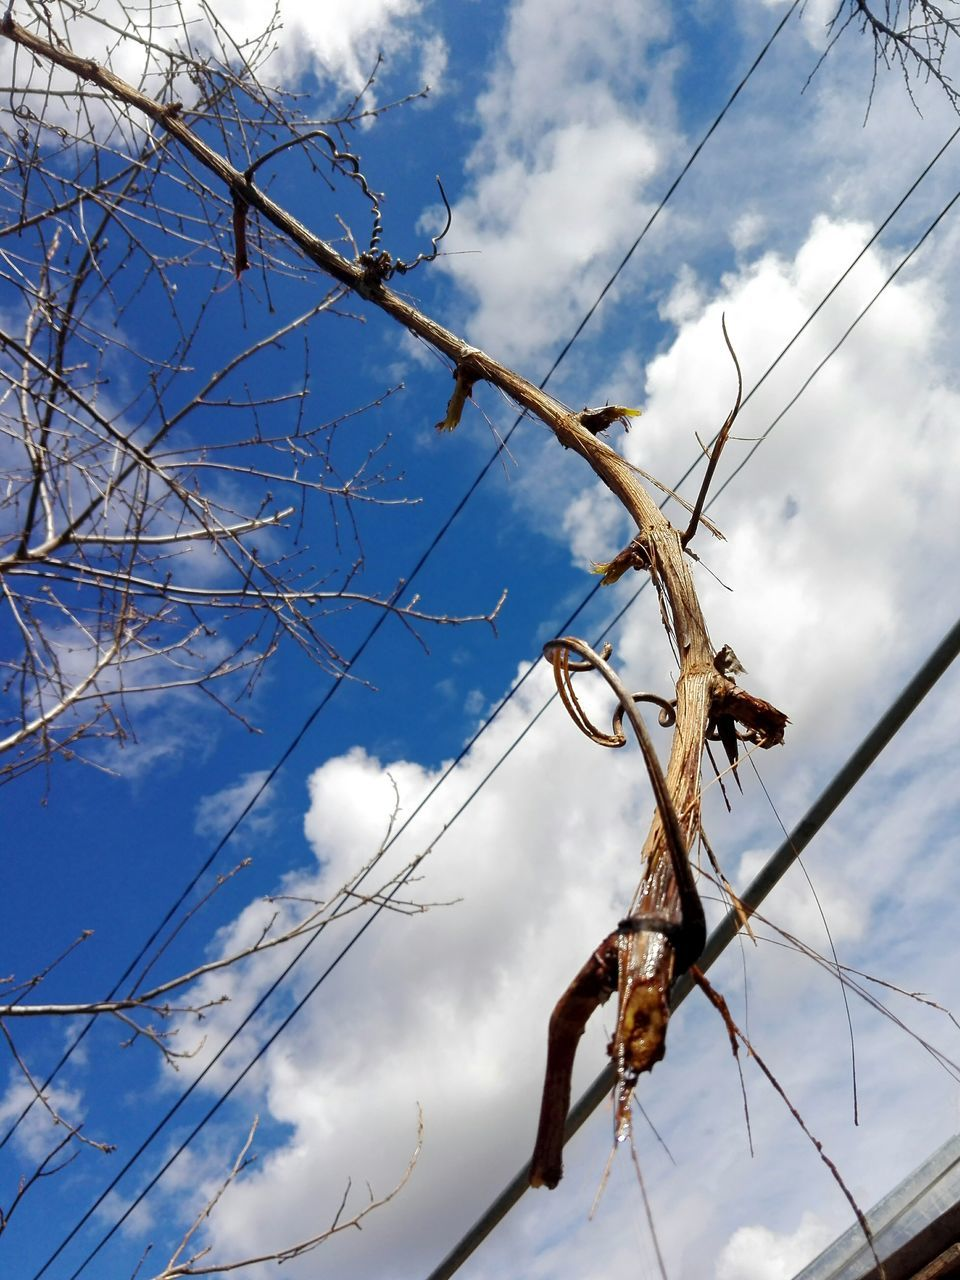 cloud - sky, sky, low angle view, day, outdoors, nature, no people, branch, growth, beauty in nature, tree, close-up